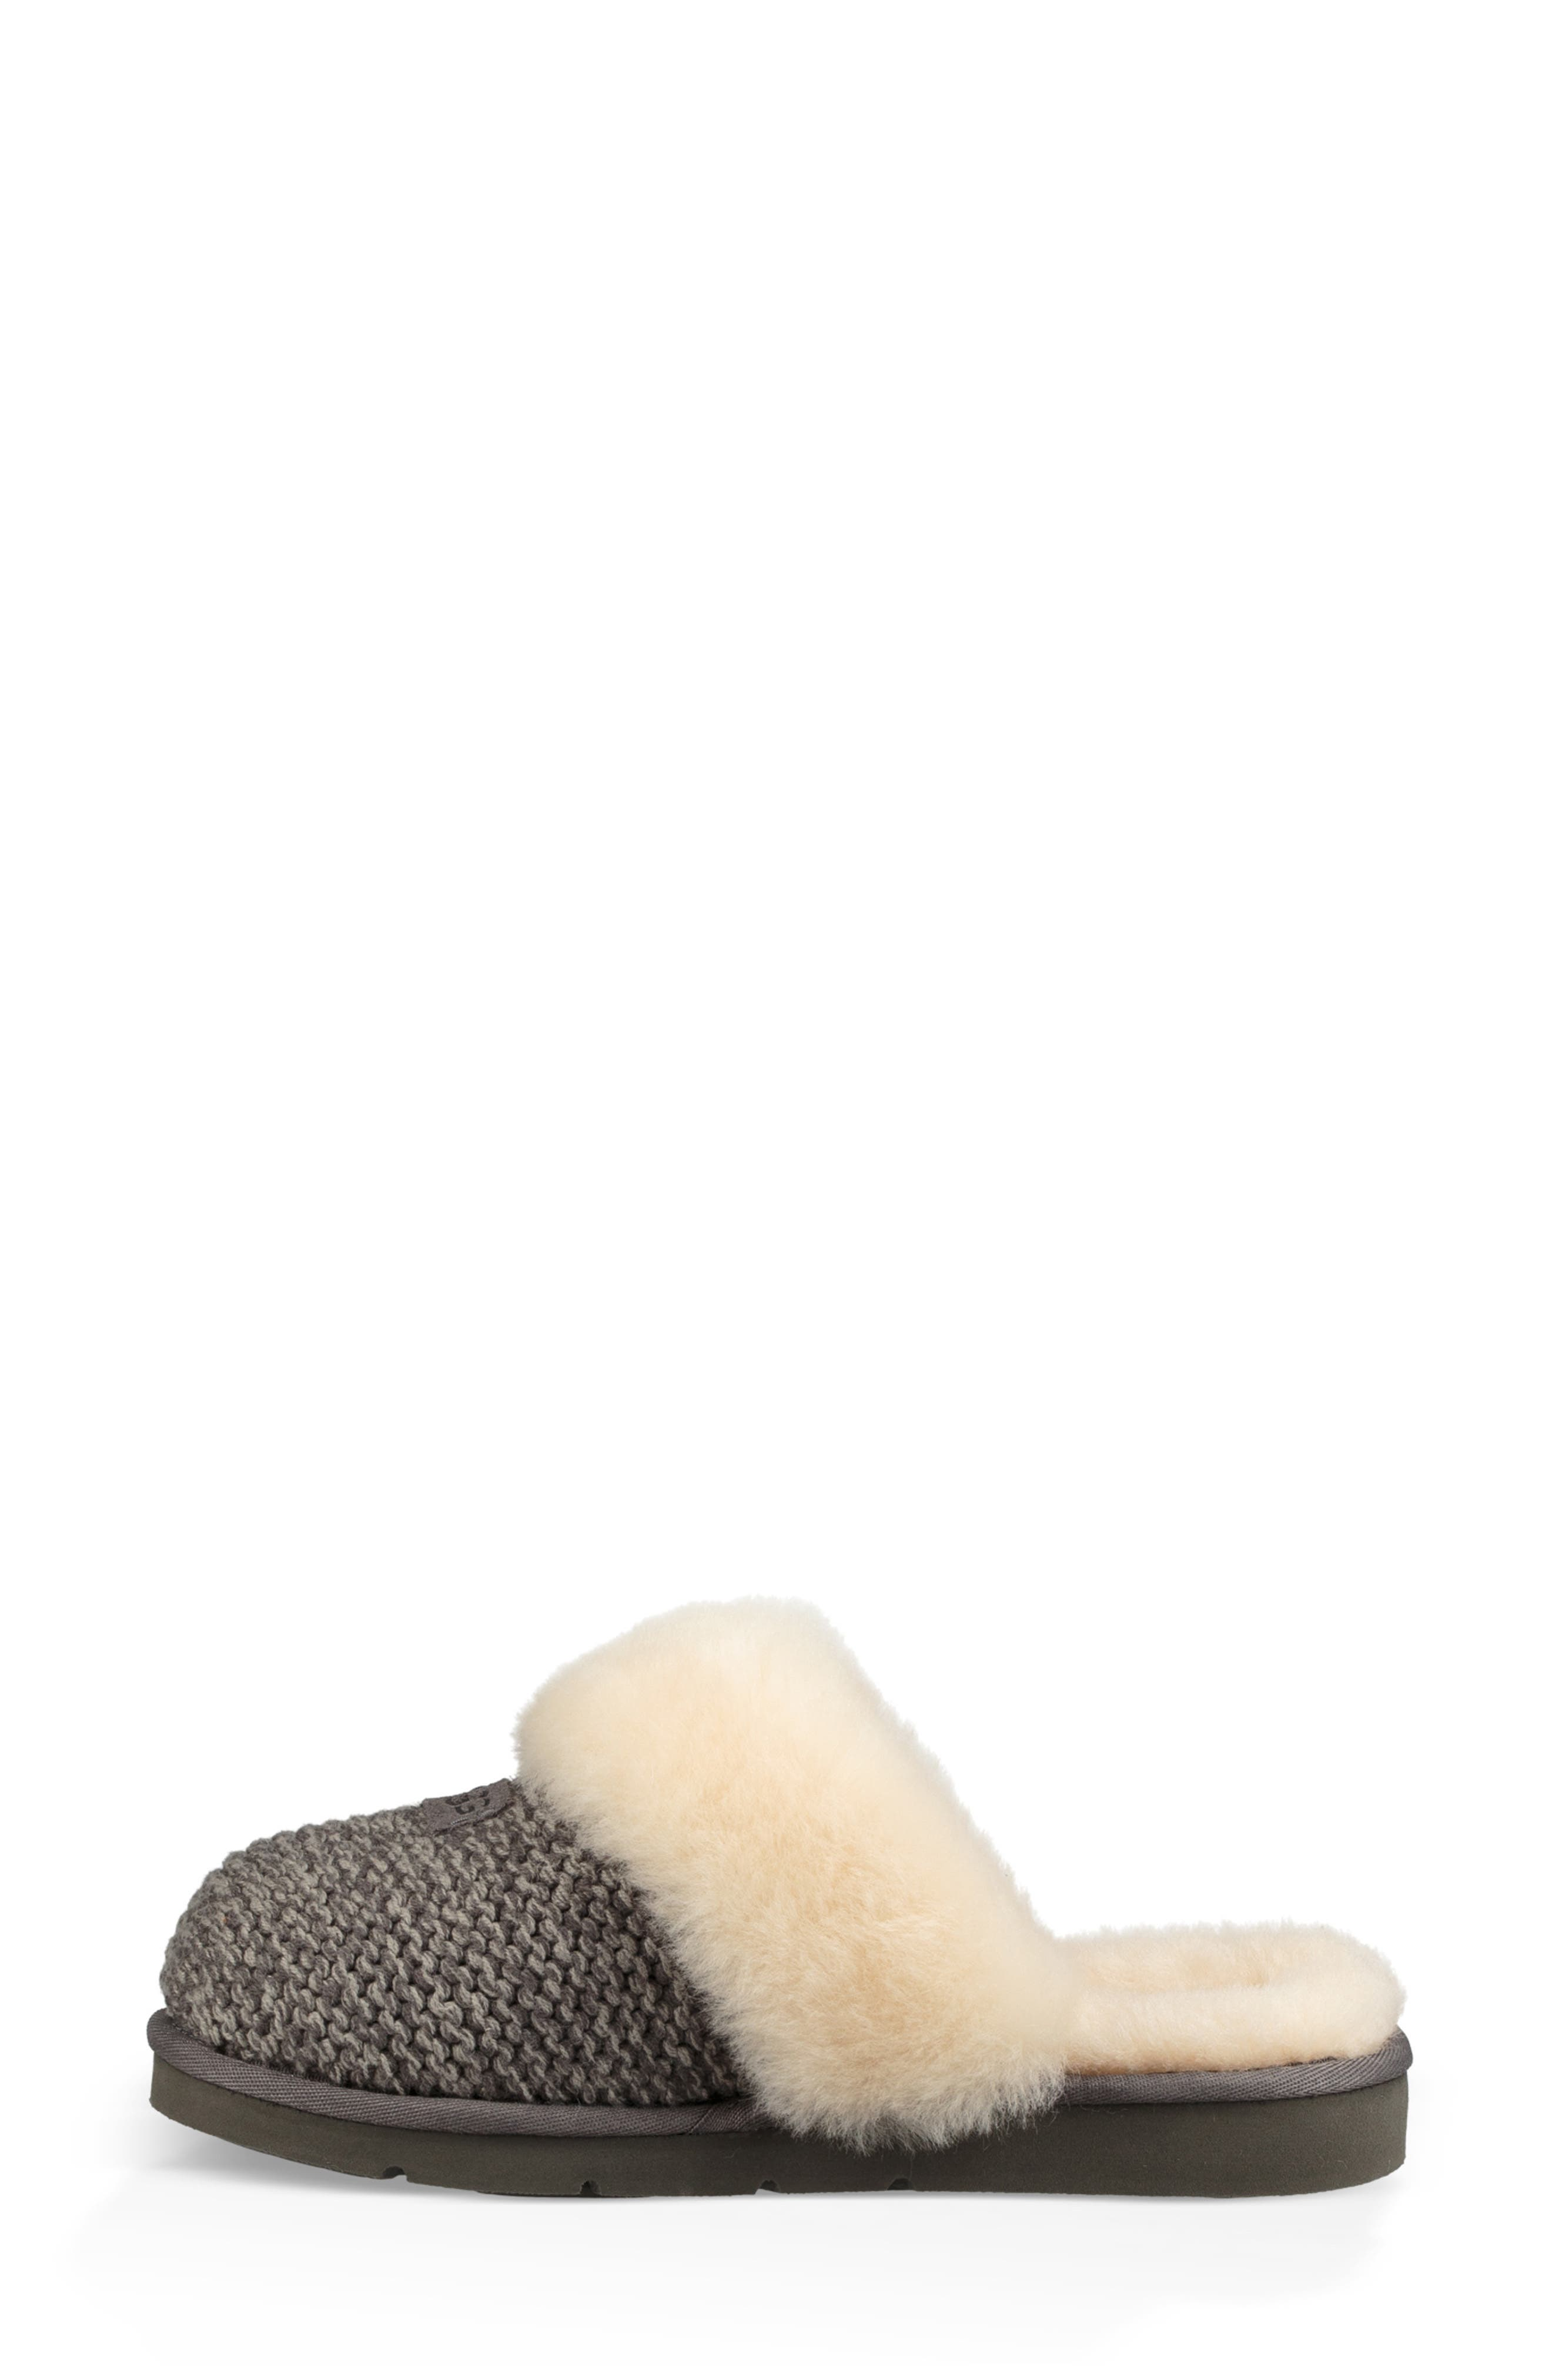 Cozy Knit Genuine Shearling Slipper,                             Alternate thumbnail 6, color,                             CHARCOAL